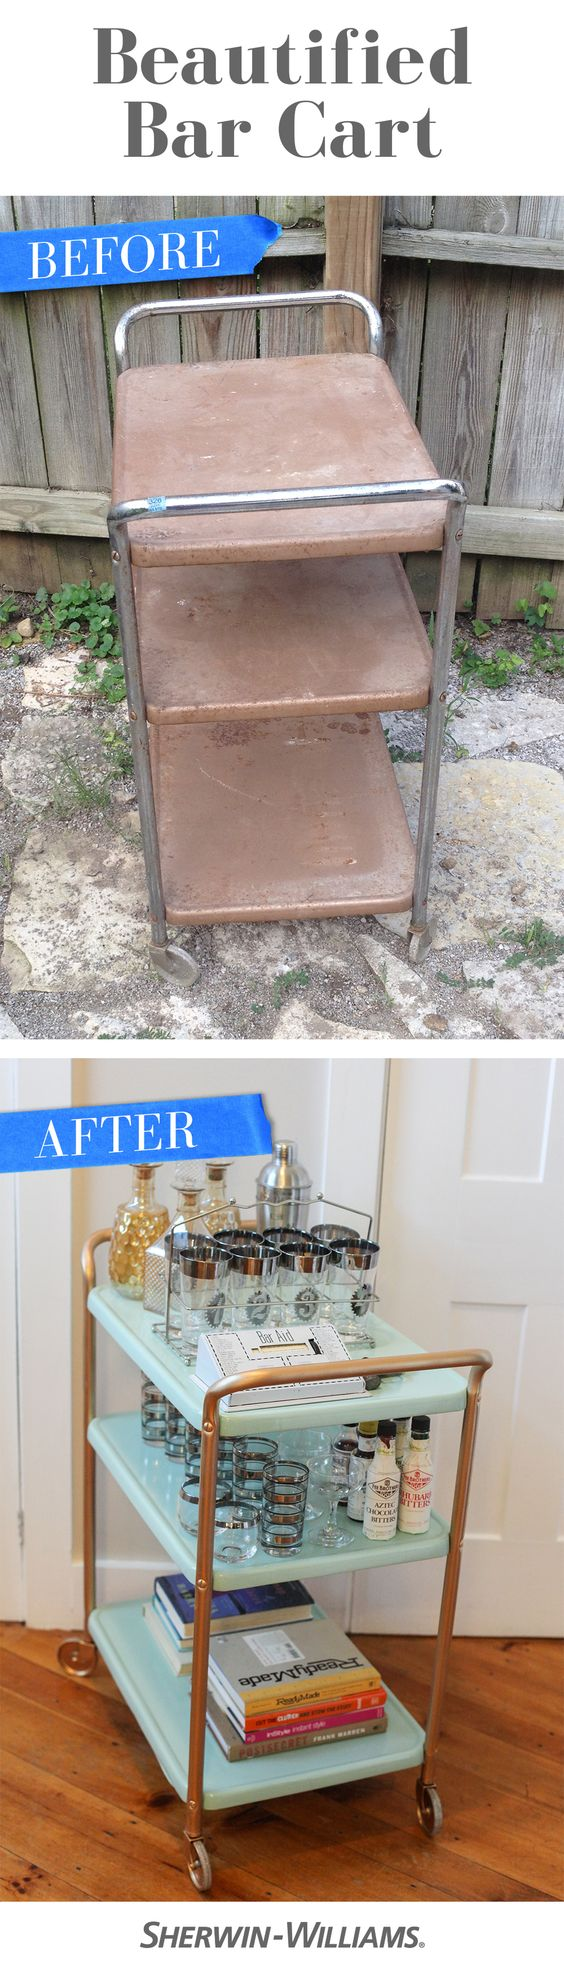 An old, dirty bar cart gets a fresh, clean start with a coat of paint in Aloe (SW 6464) and a touch of Krylon Spray Paint in Gold.